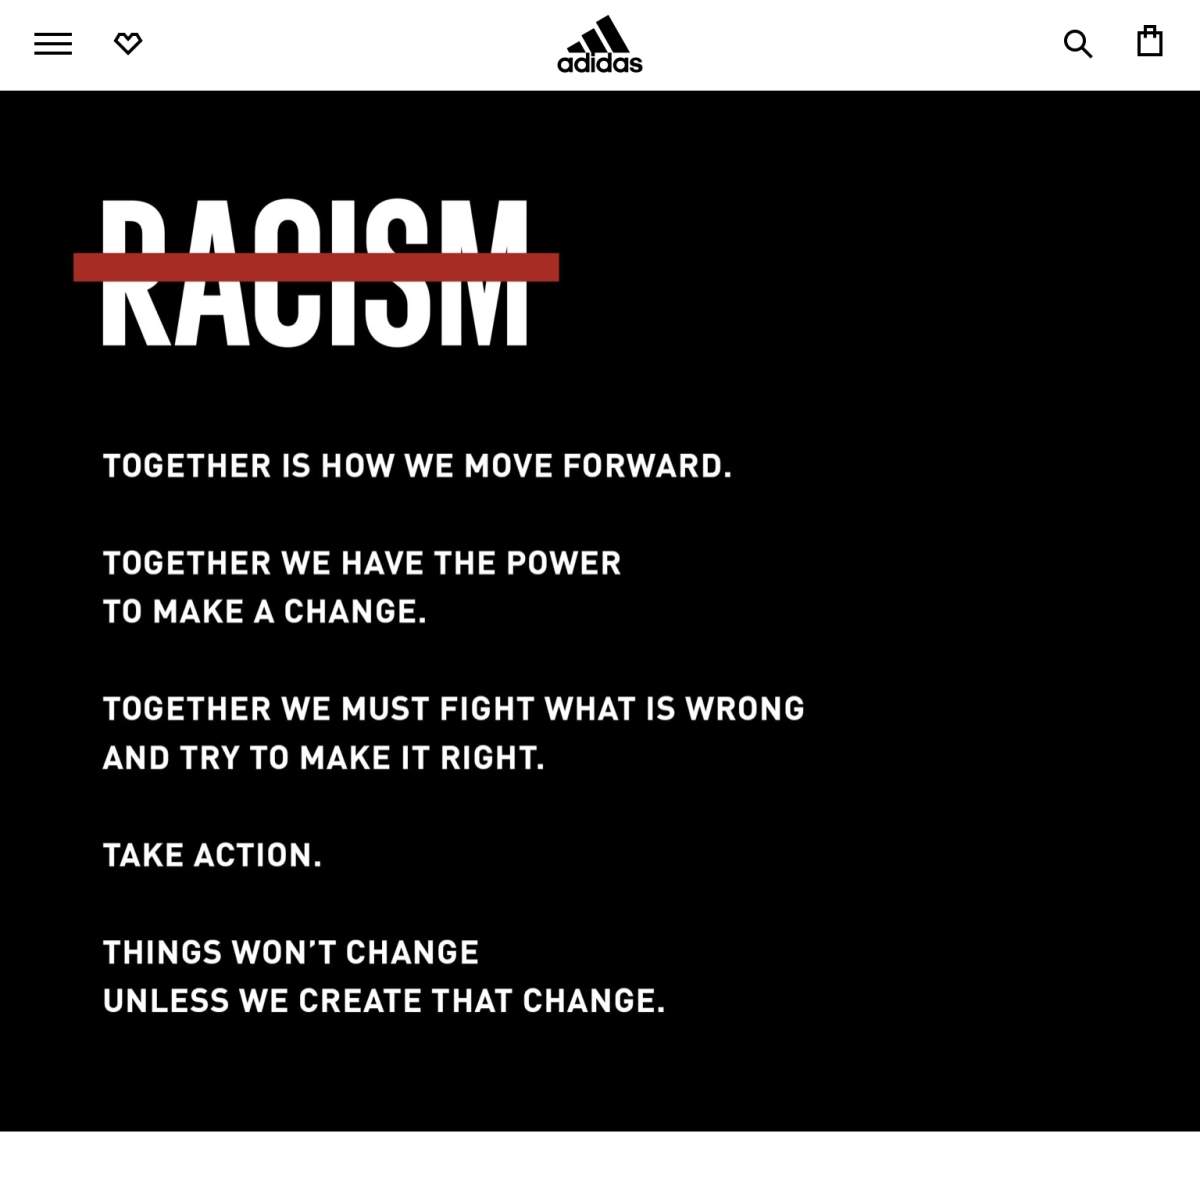 Adidas website carrying a message